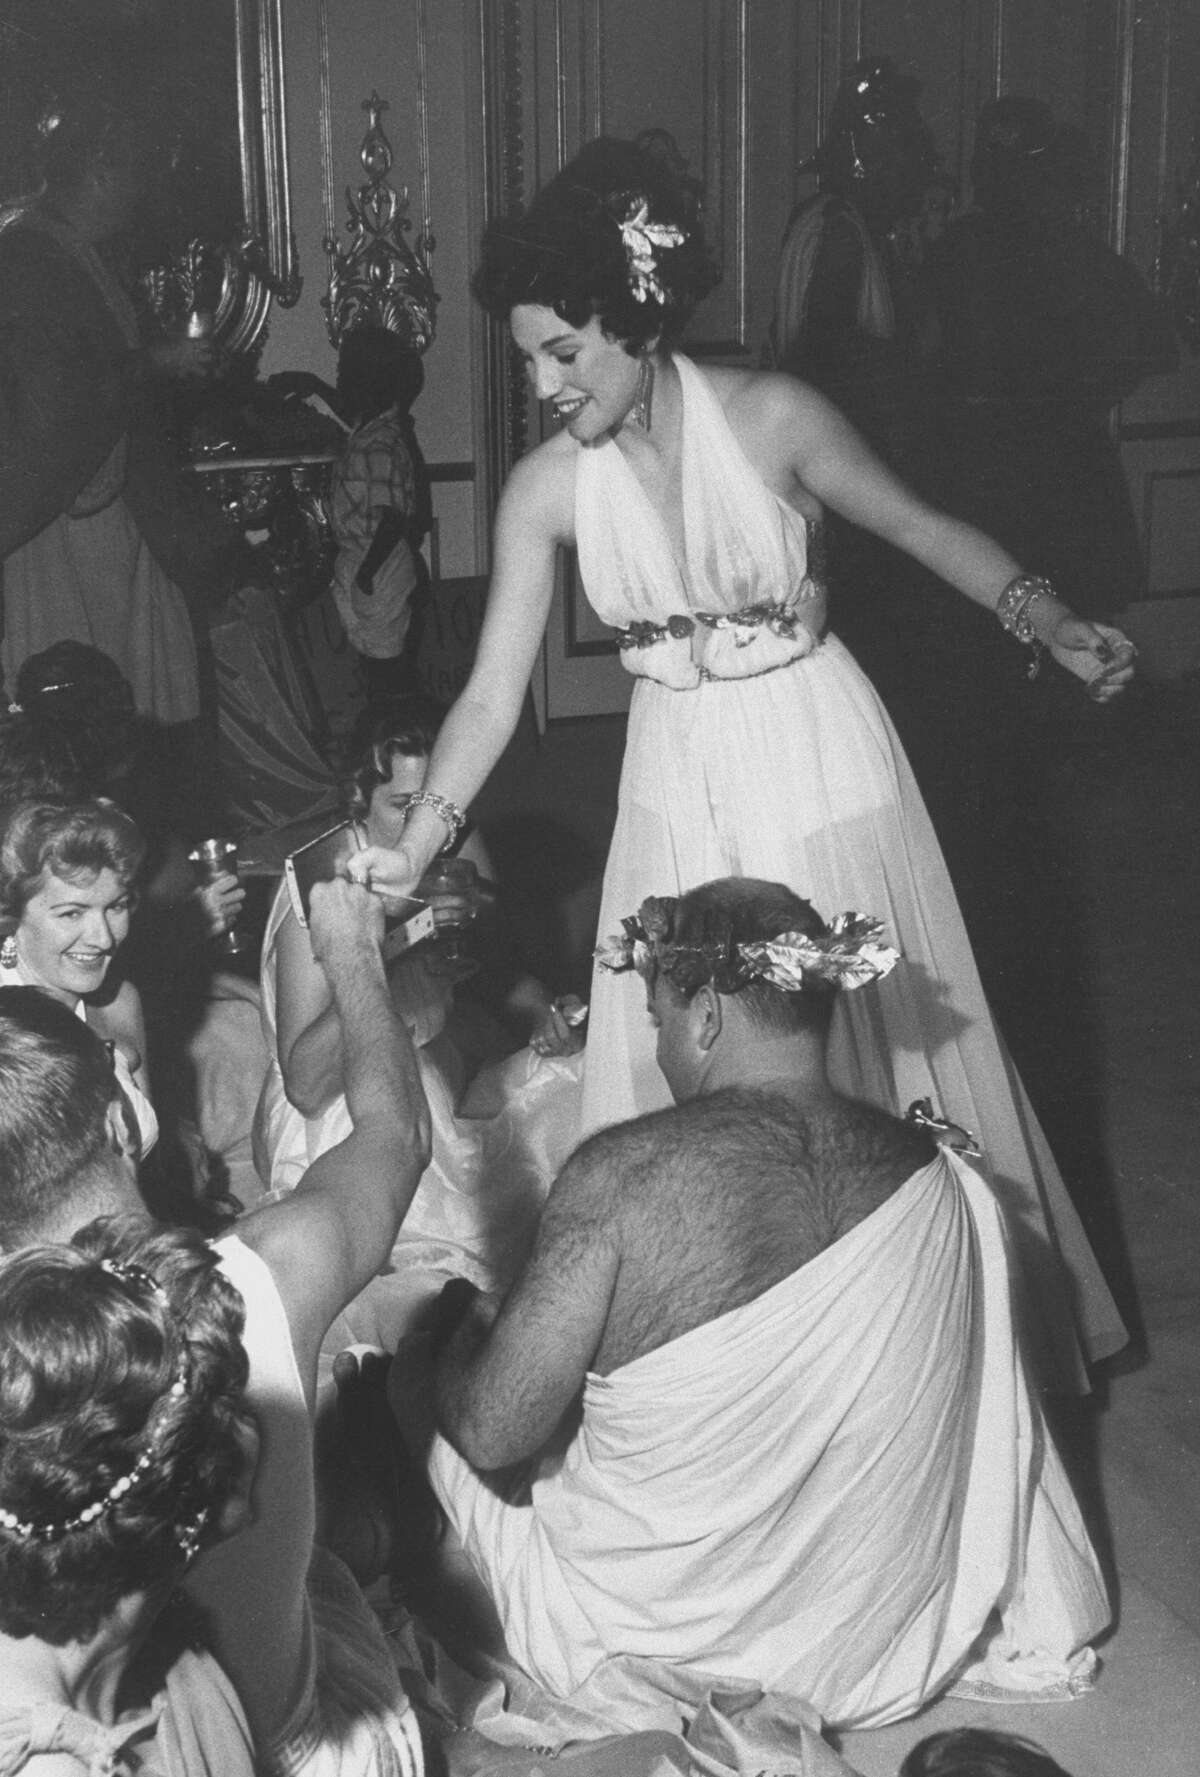 1959:American socialite and businesswoman Joanne King (later Herring) passes out lots to her guests in order to determine who will be mock 'burned at the stake' at a Roman-themed birthday in her honor held in her home, Houston, Texas, July 20, 1959.